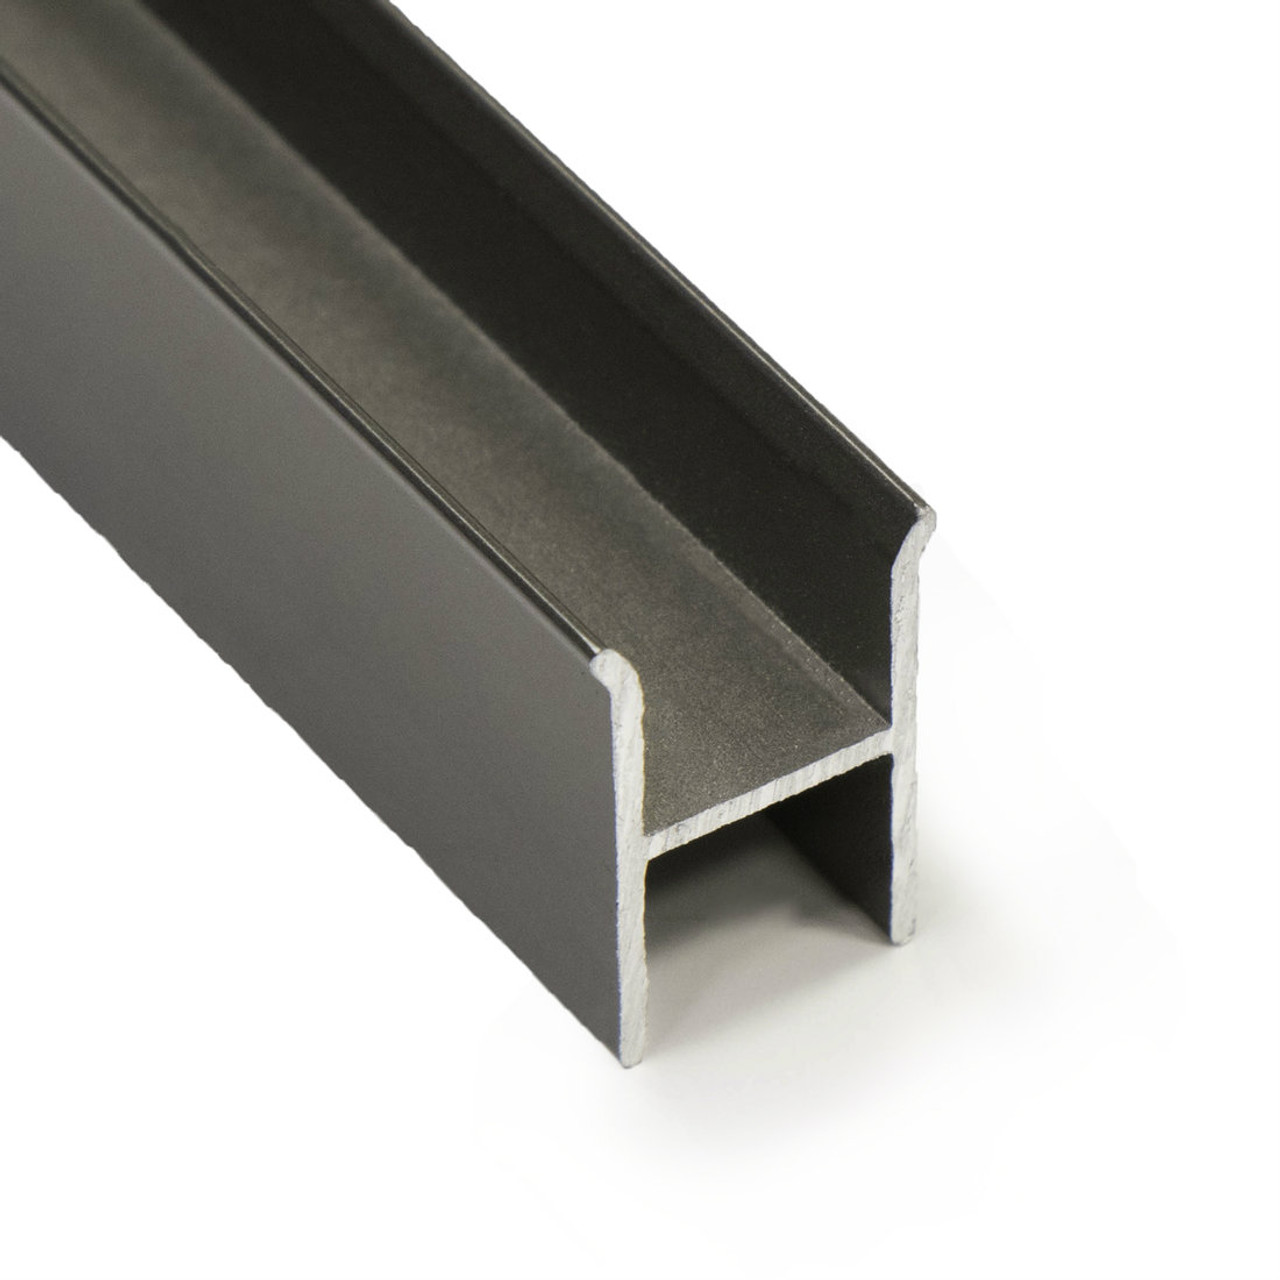 Astragal - For French Door Applications